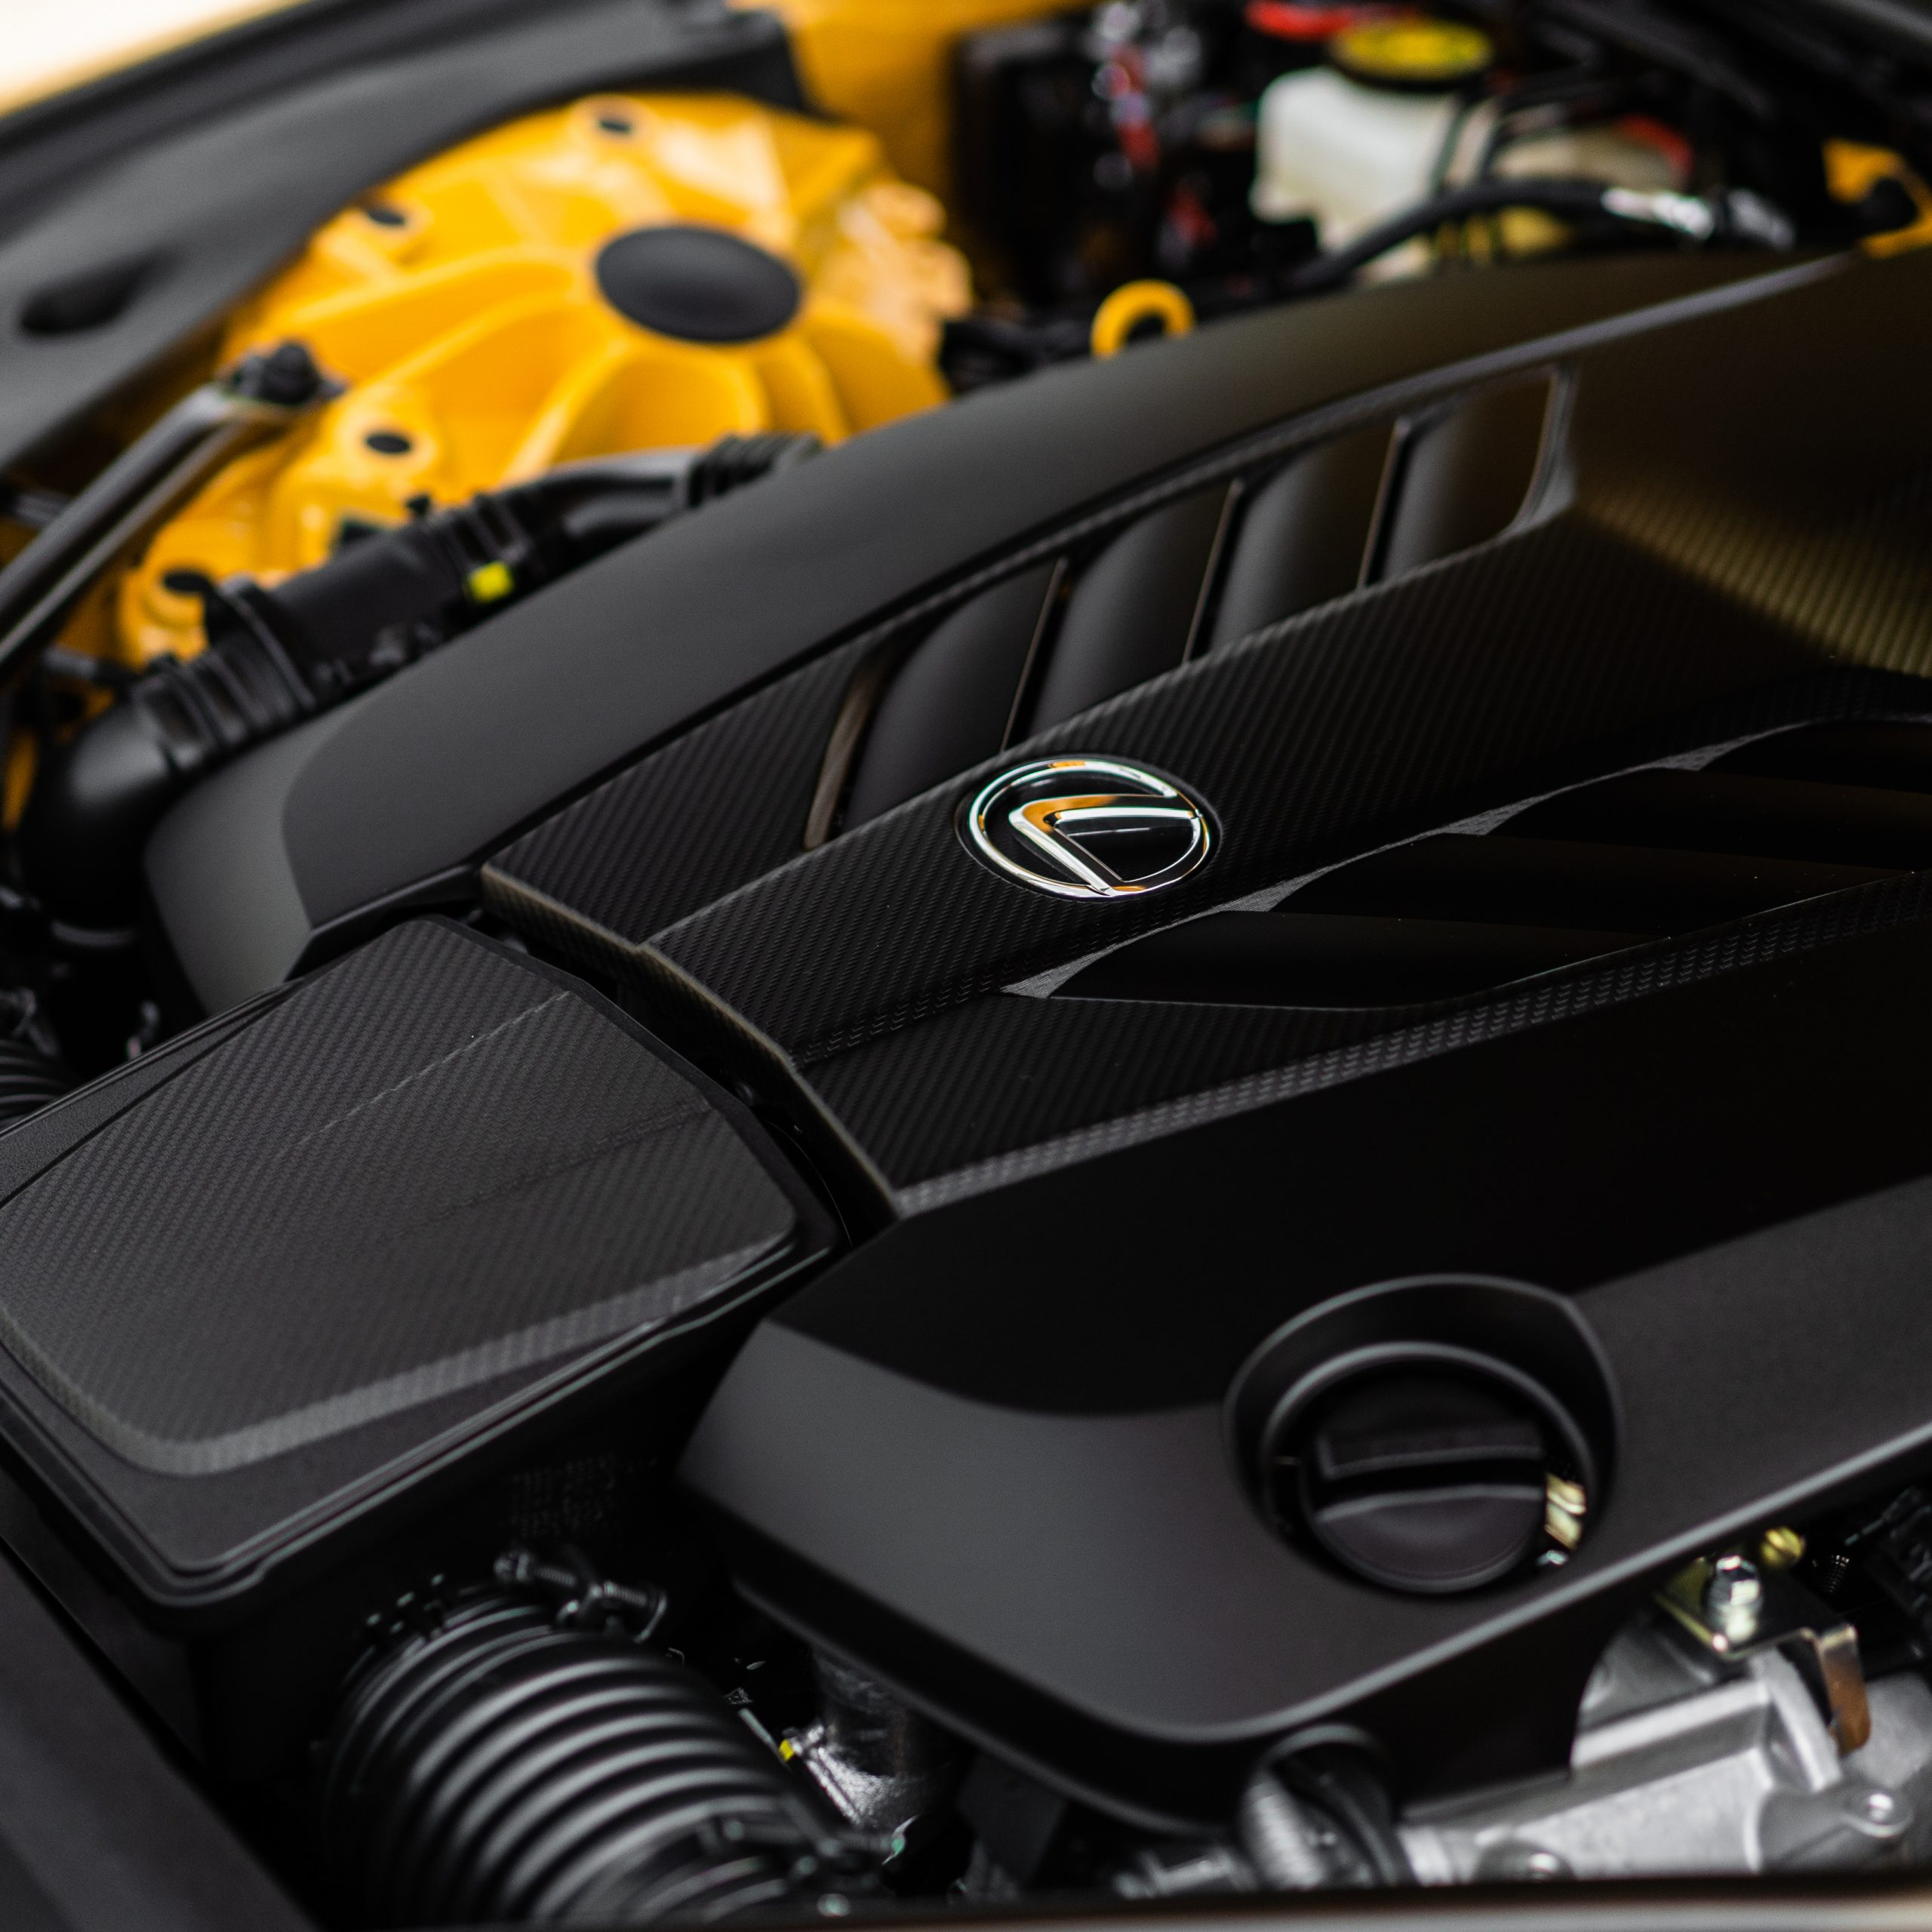 2020 Lexus LC 500 Convertible engine